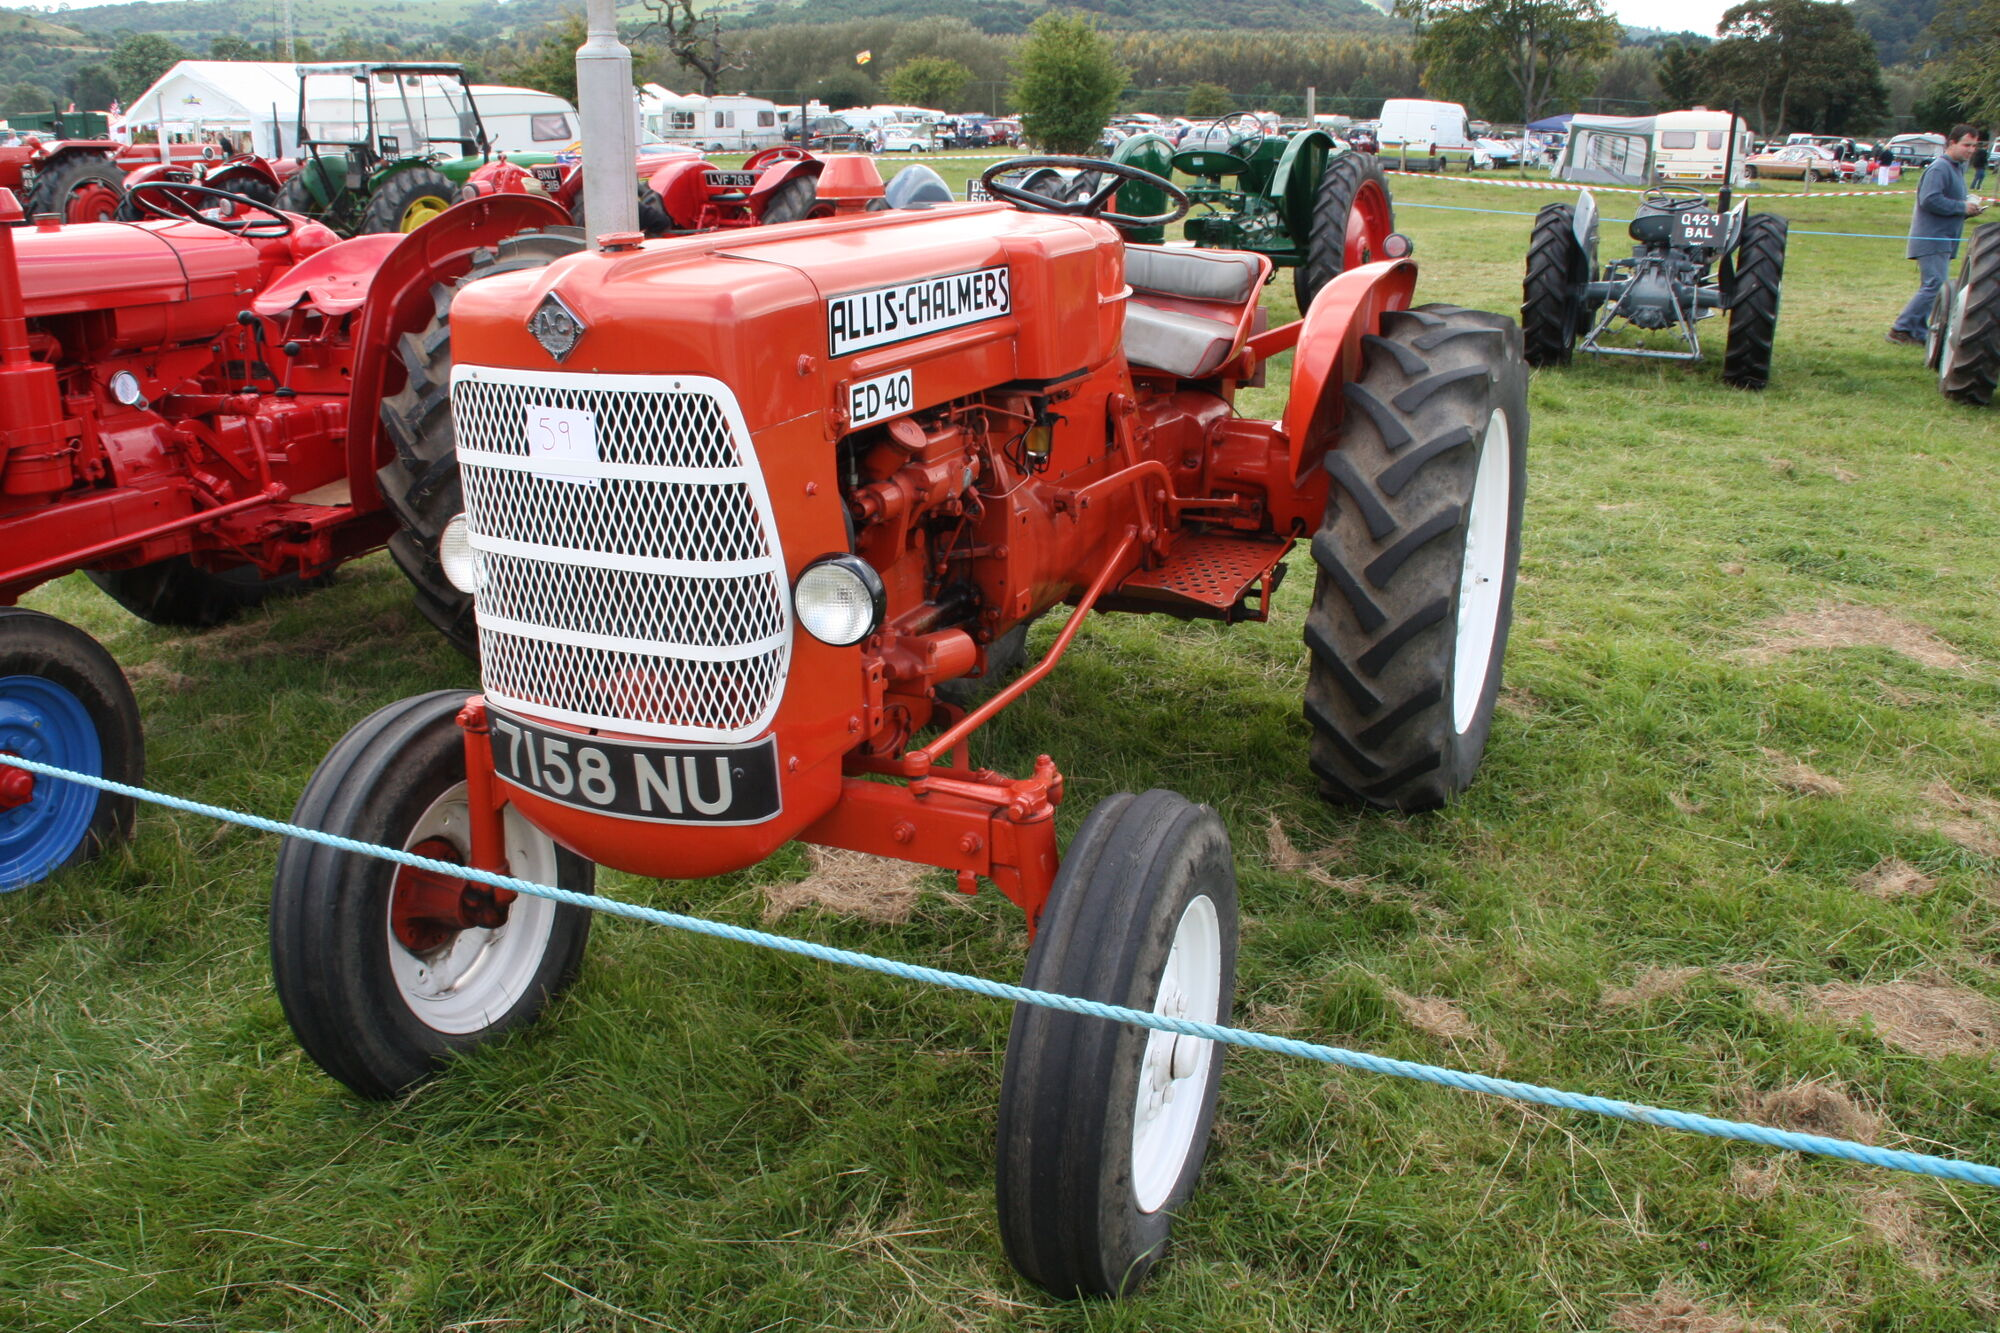 Category:40 (model number) | Tractor & Construction Plant